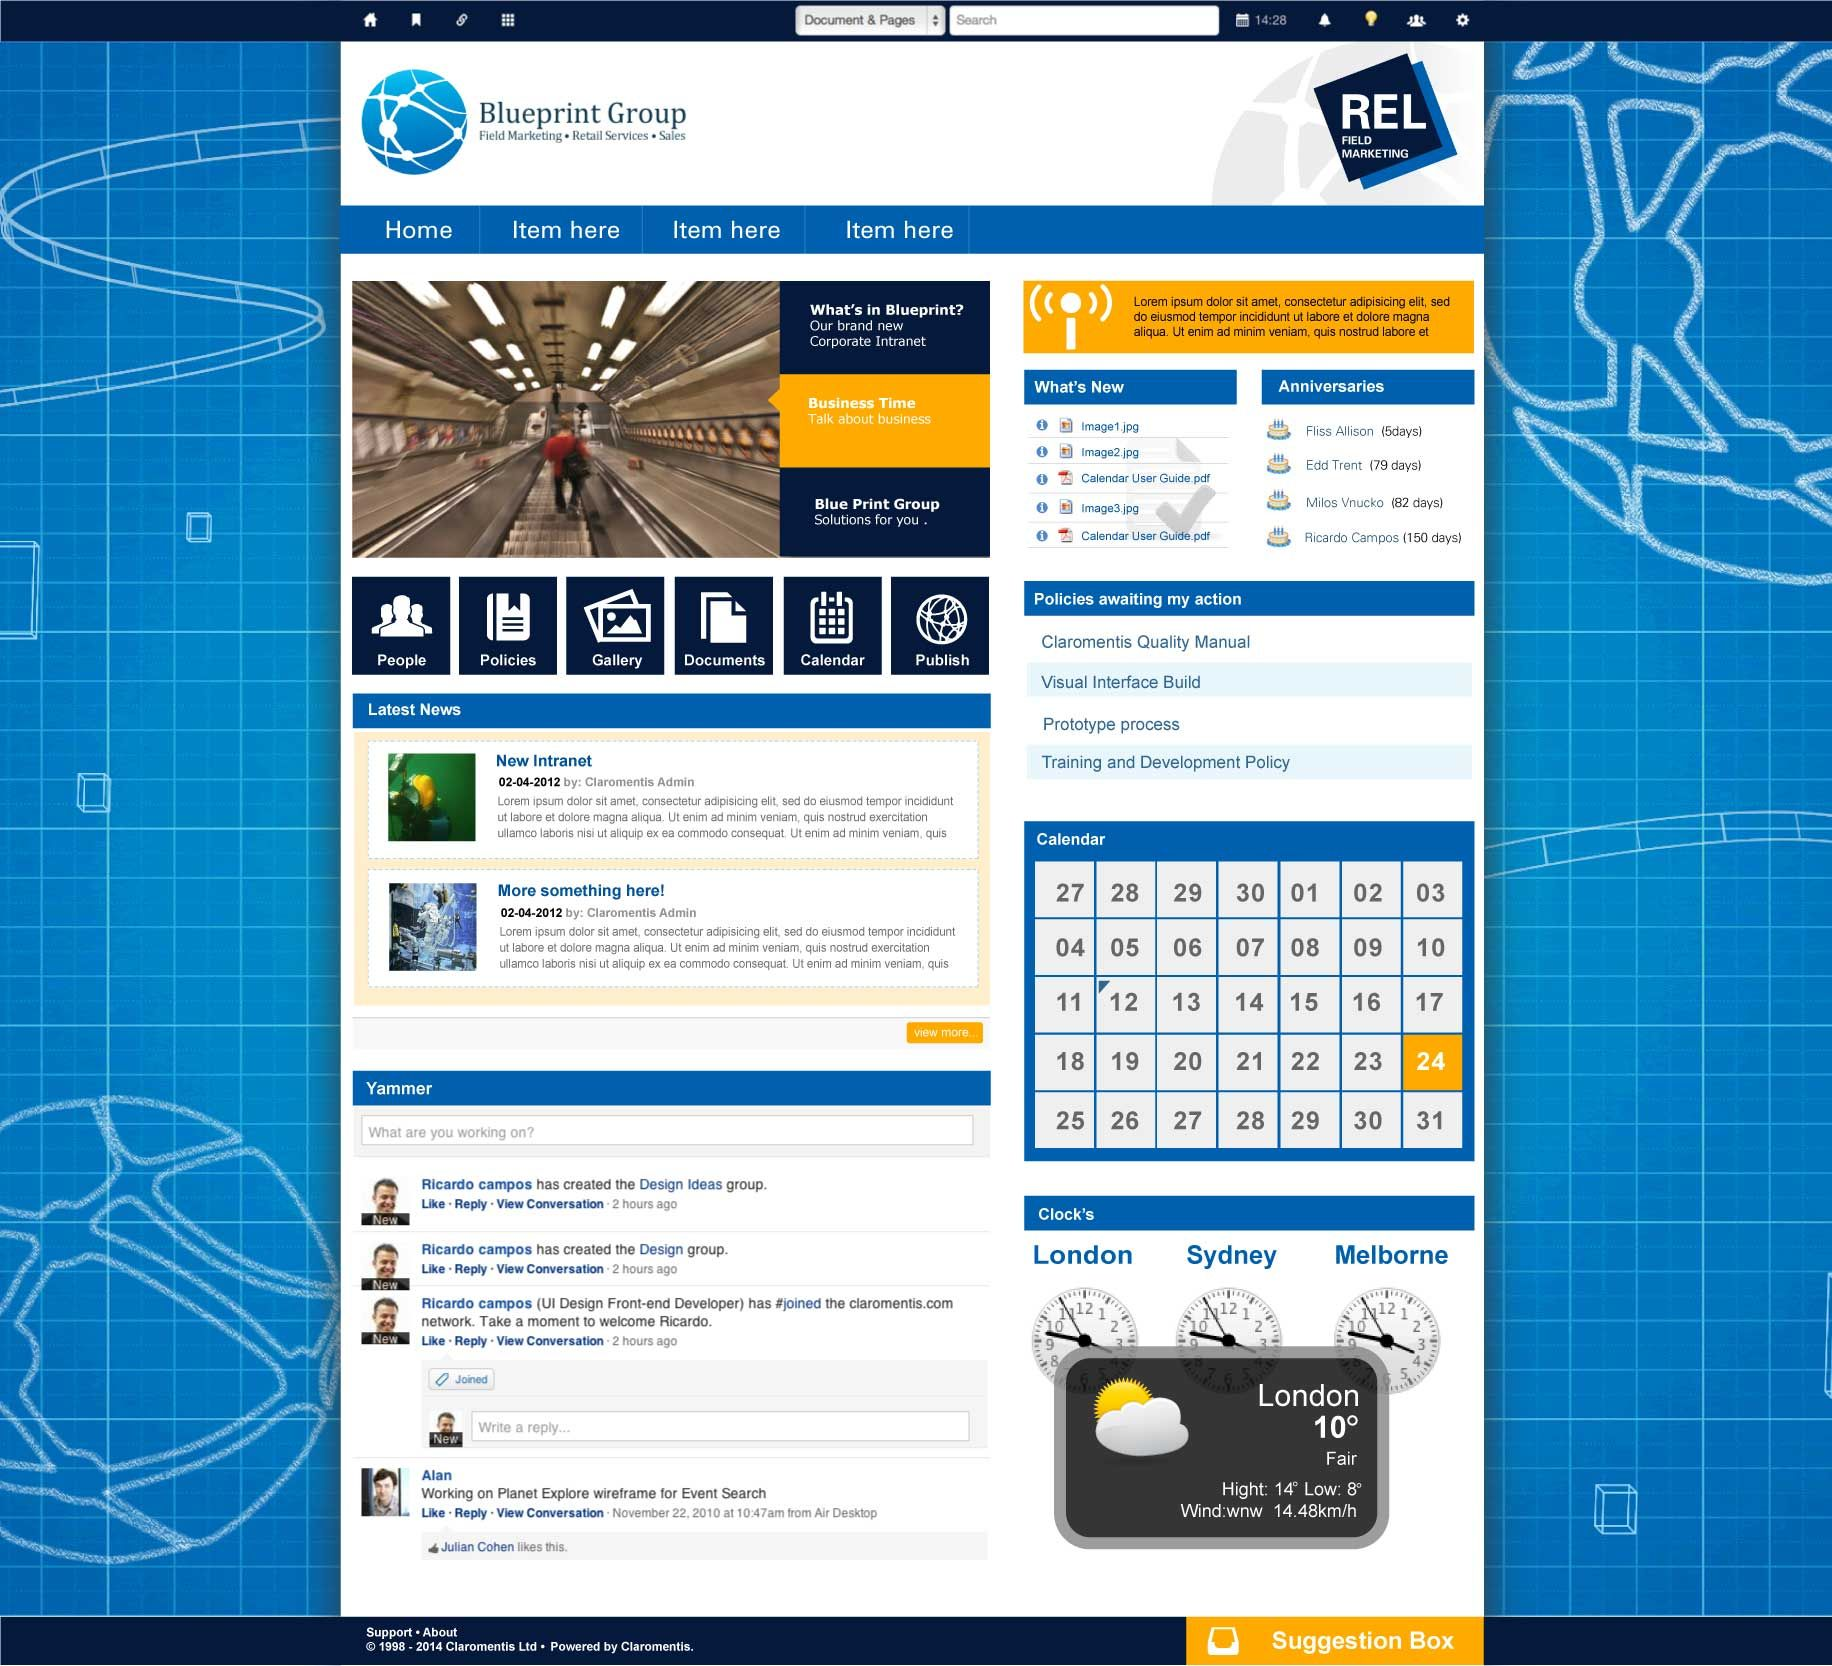 Intranet Site Map Example: Like The Use Of Icons Below The Main Image. Blue Print